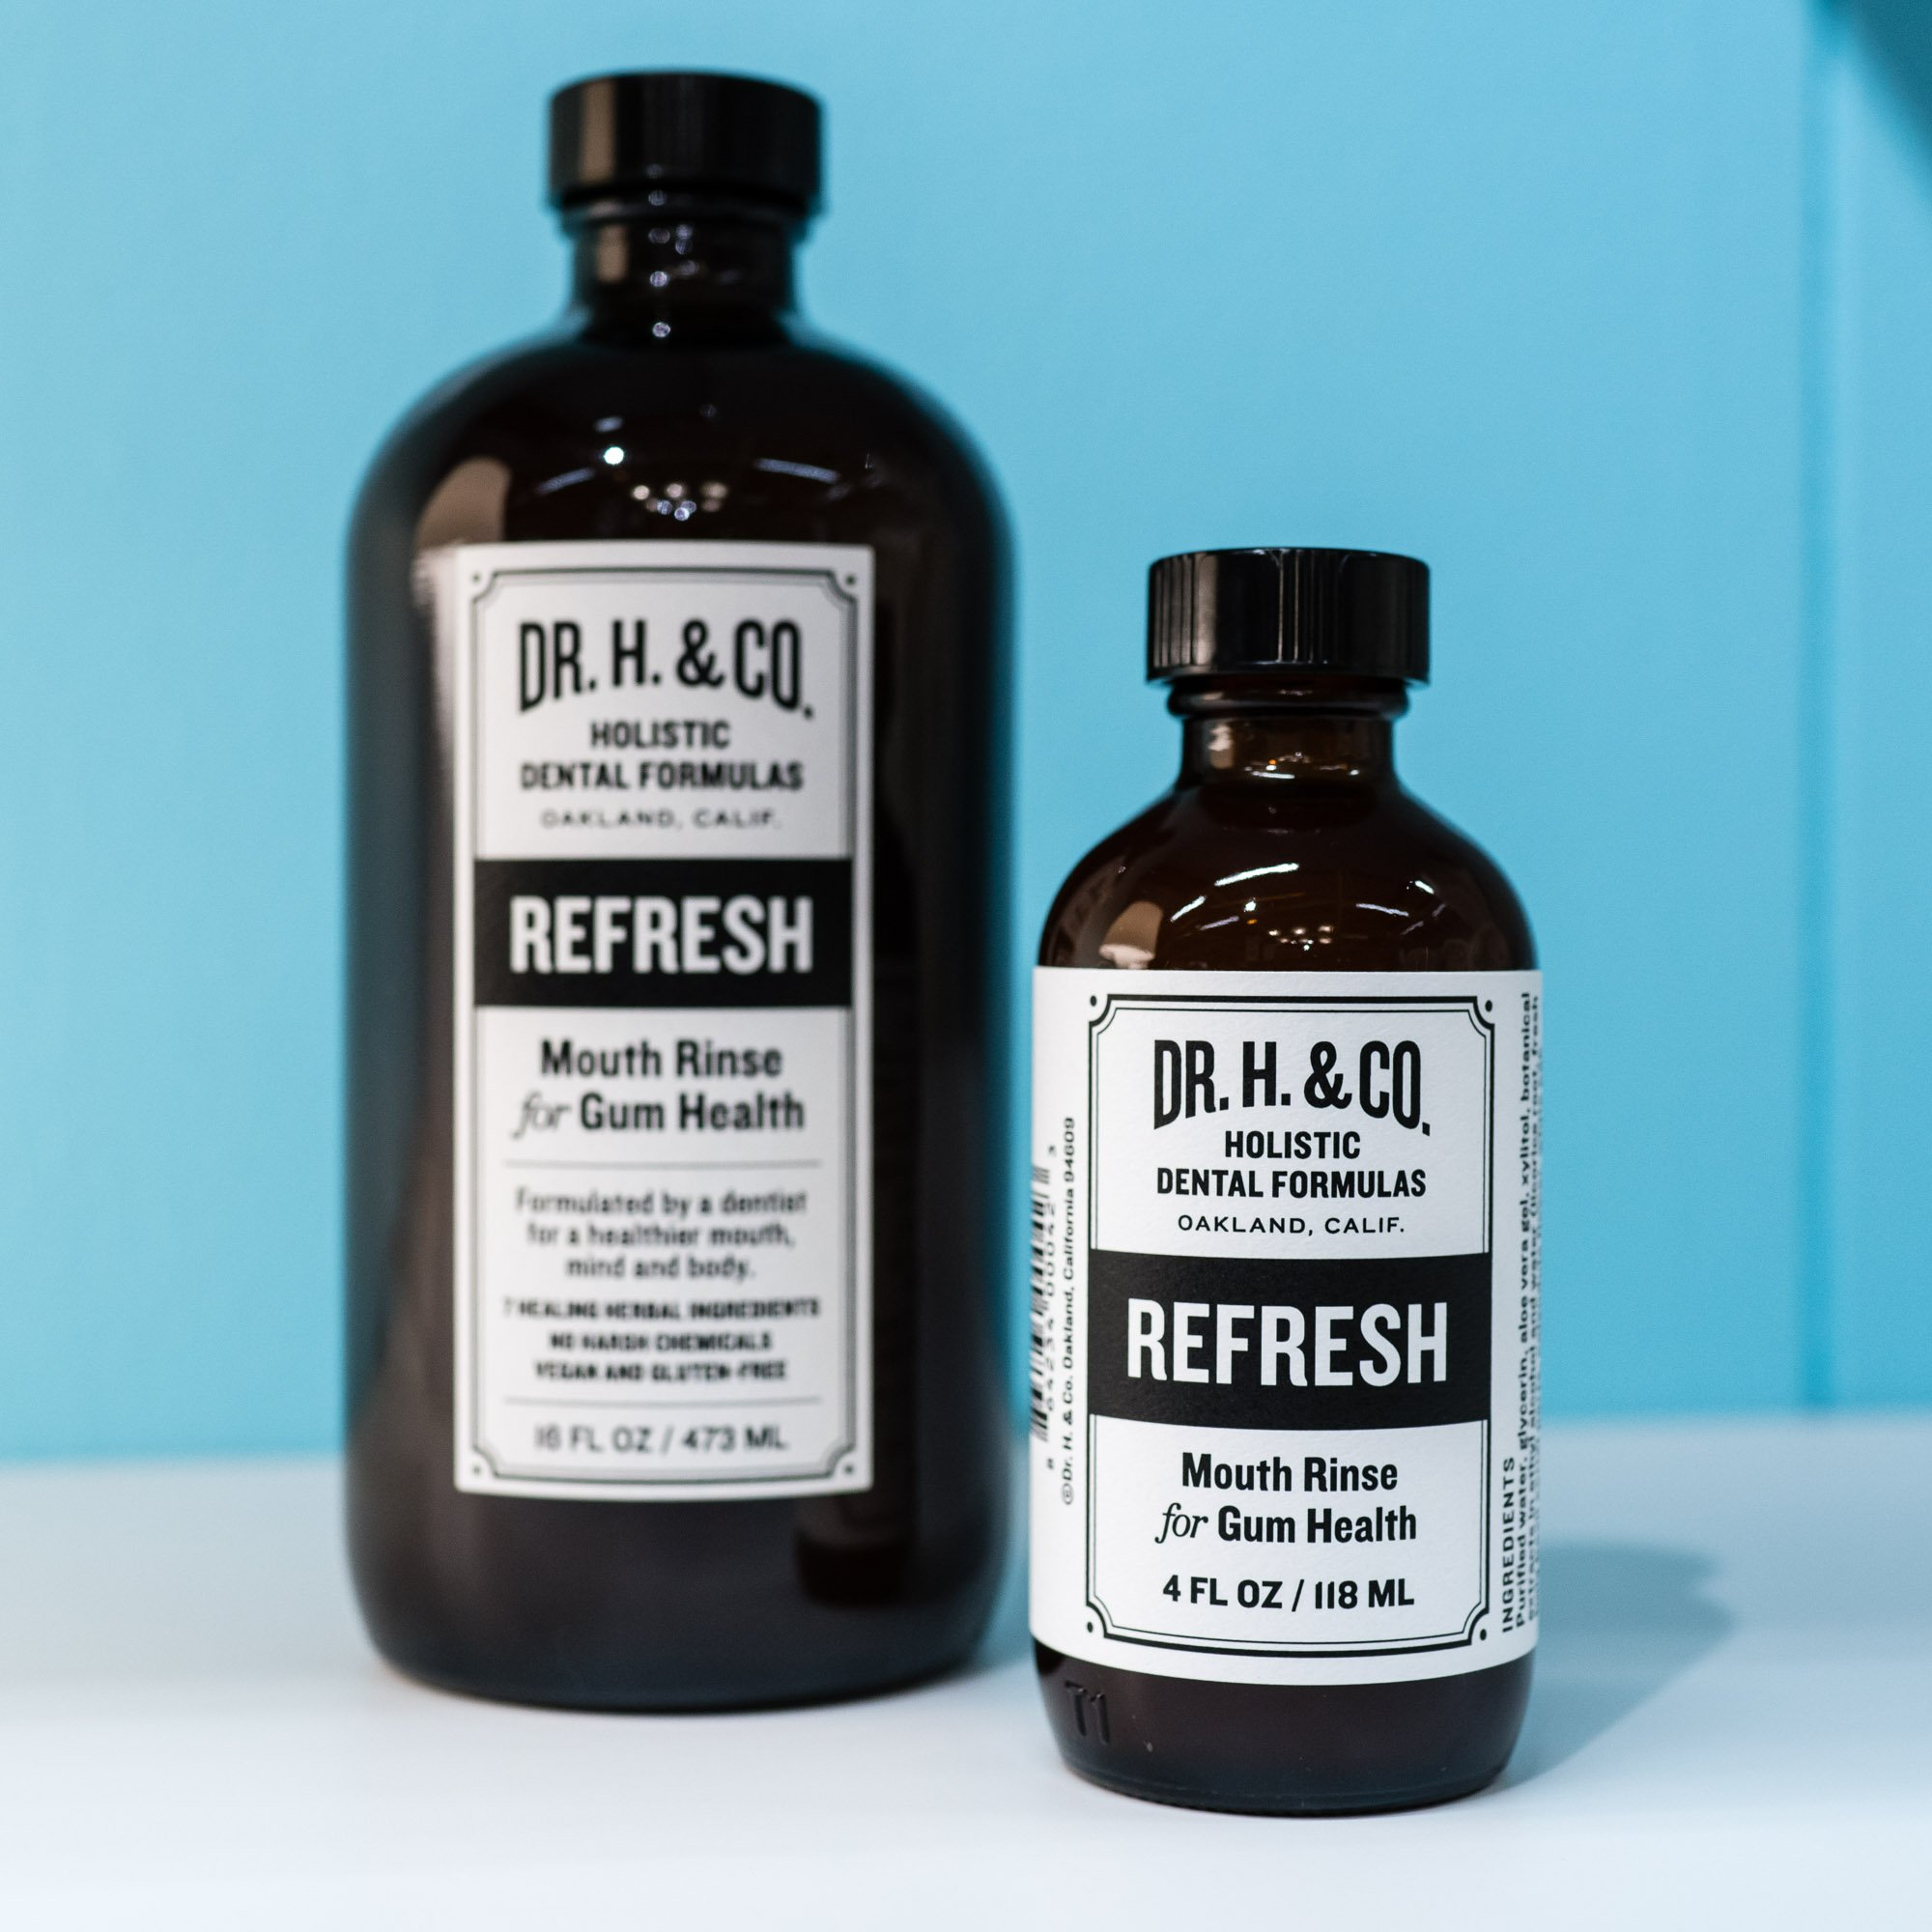 Dr. H. & Co. Dentist Formulated Refresh Mouthwash Ð All Natural Herbal and Holistic Mouth Rinse for Healthy Gums and Teeth (4 oz Glass Bottle) by Dr. H. & Co. (Image #5)